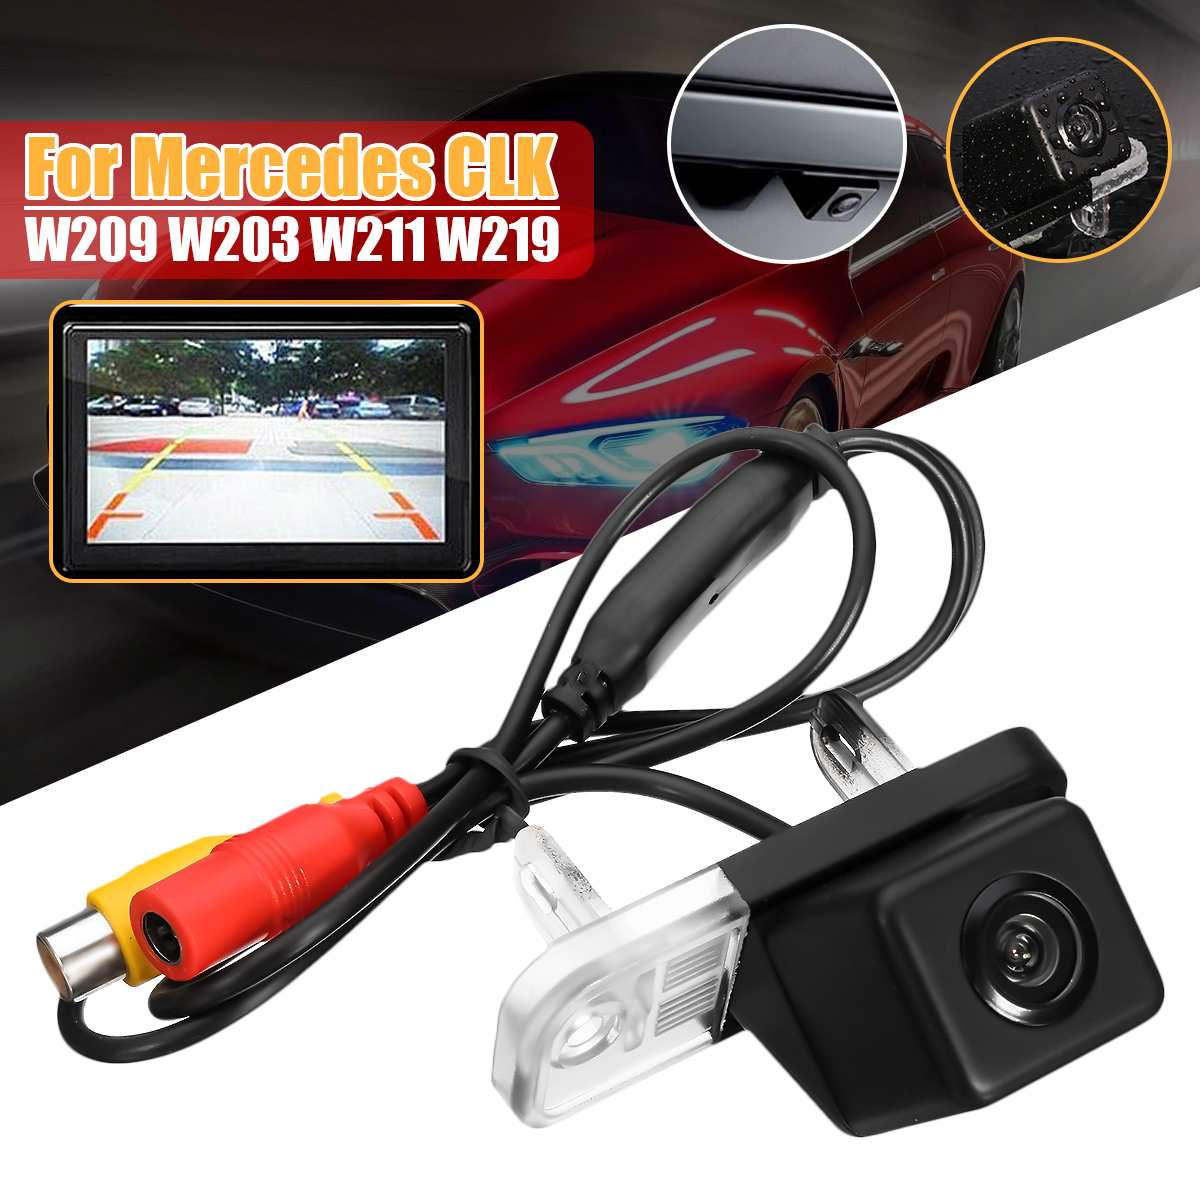 CCD HD Auto Car Rear View Camera Reverse Parking Night Vision Waterproof for Mercedes Benz CLK W209 W203 E Class W211 W219